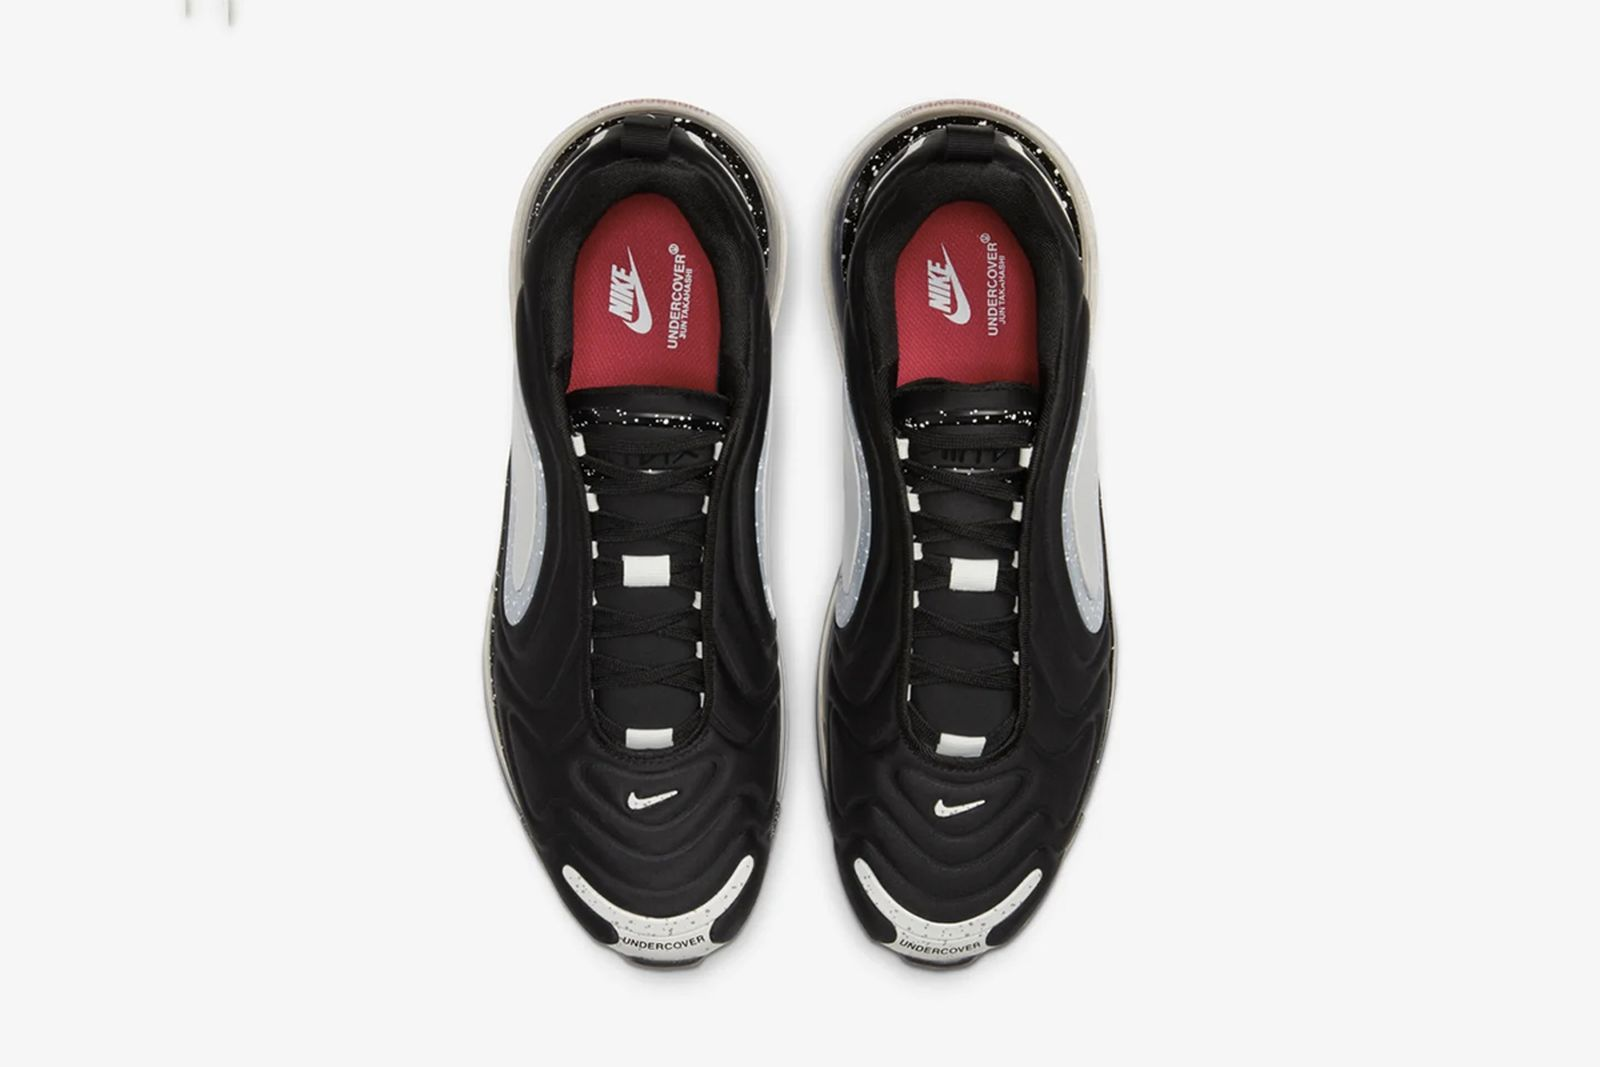 undercover-nike-air-max-720-release-date-price-010